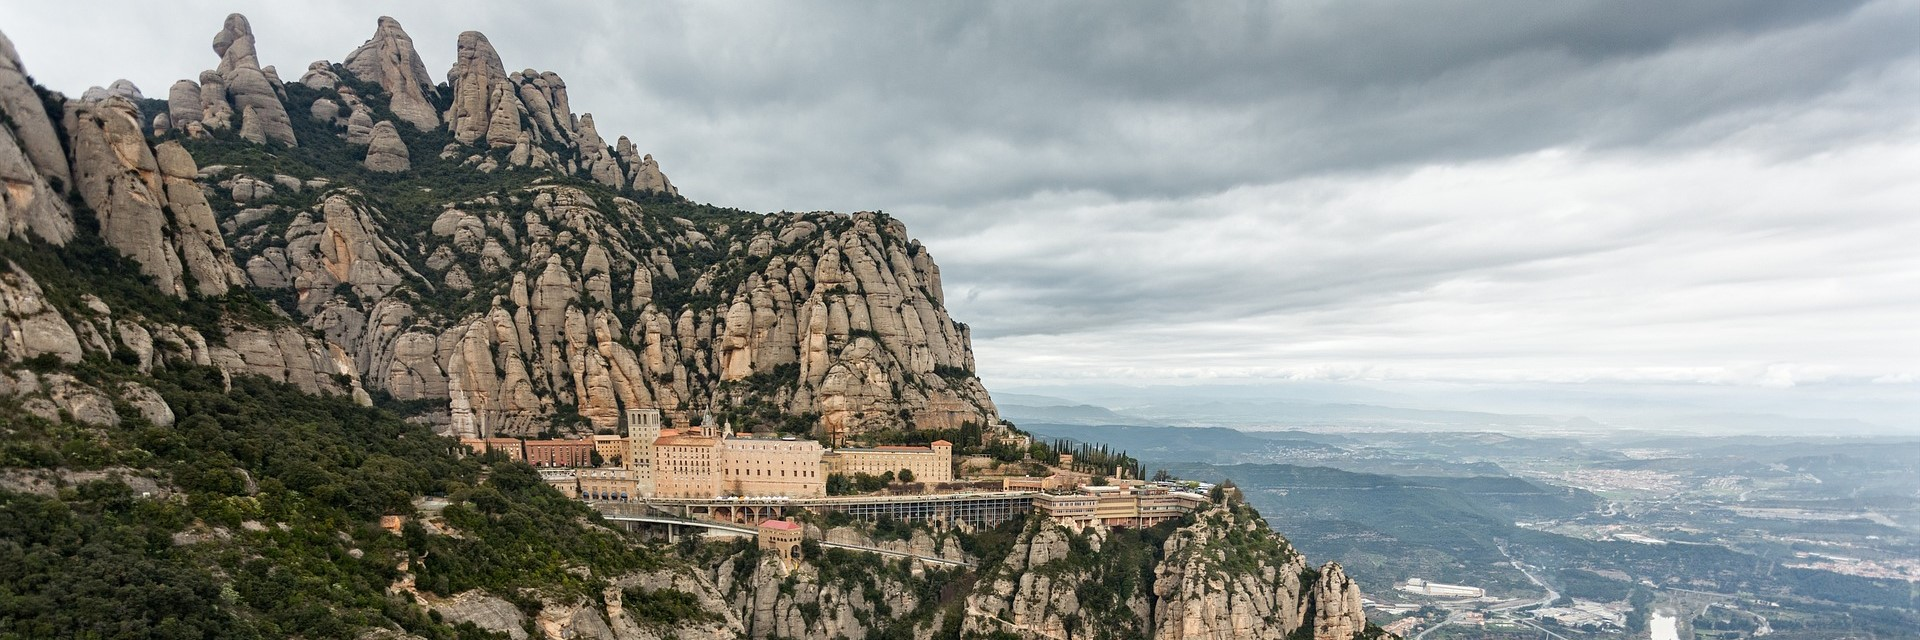 Carte Barcelone Montserrat.Everything You Need To Know To Visit Montserrat In Barcelona Lugaris